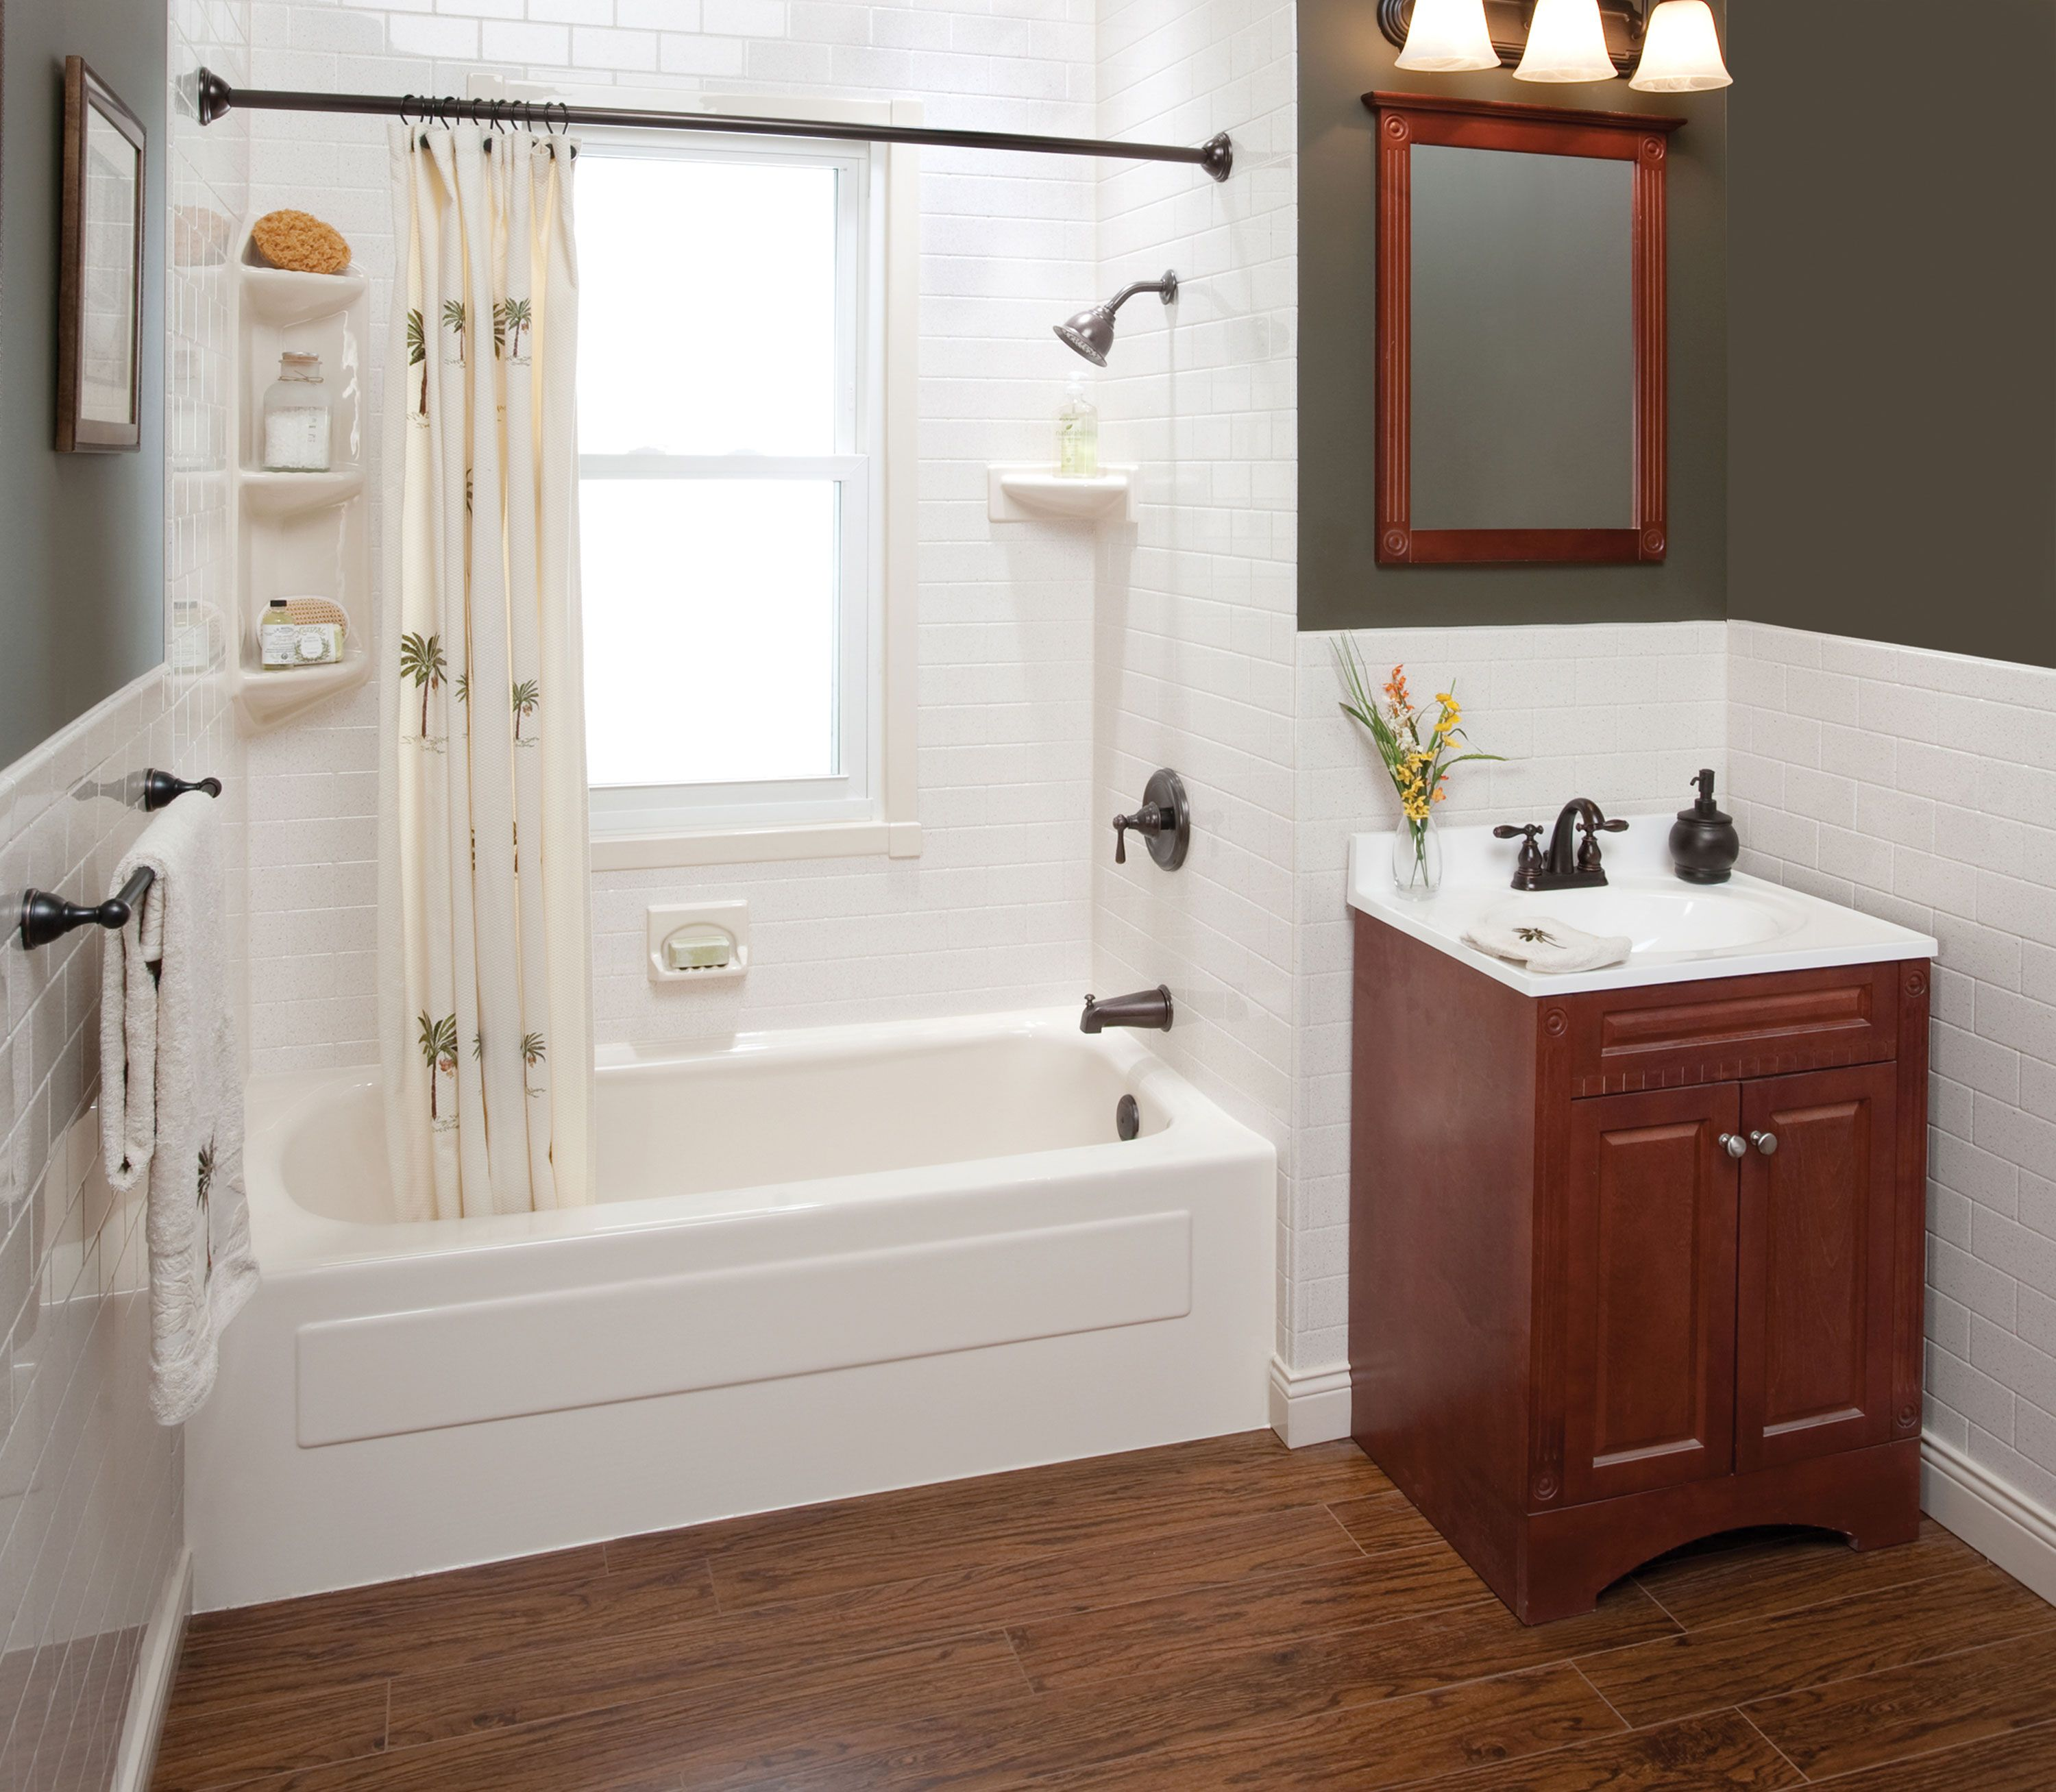 remodel hospi a noiseworks bathroom how to traditional co much